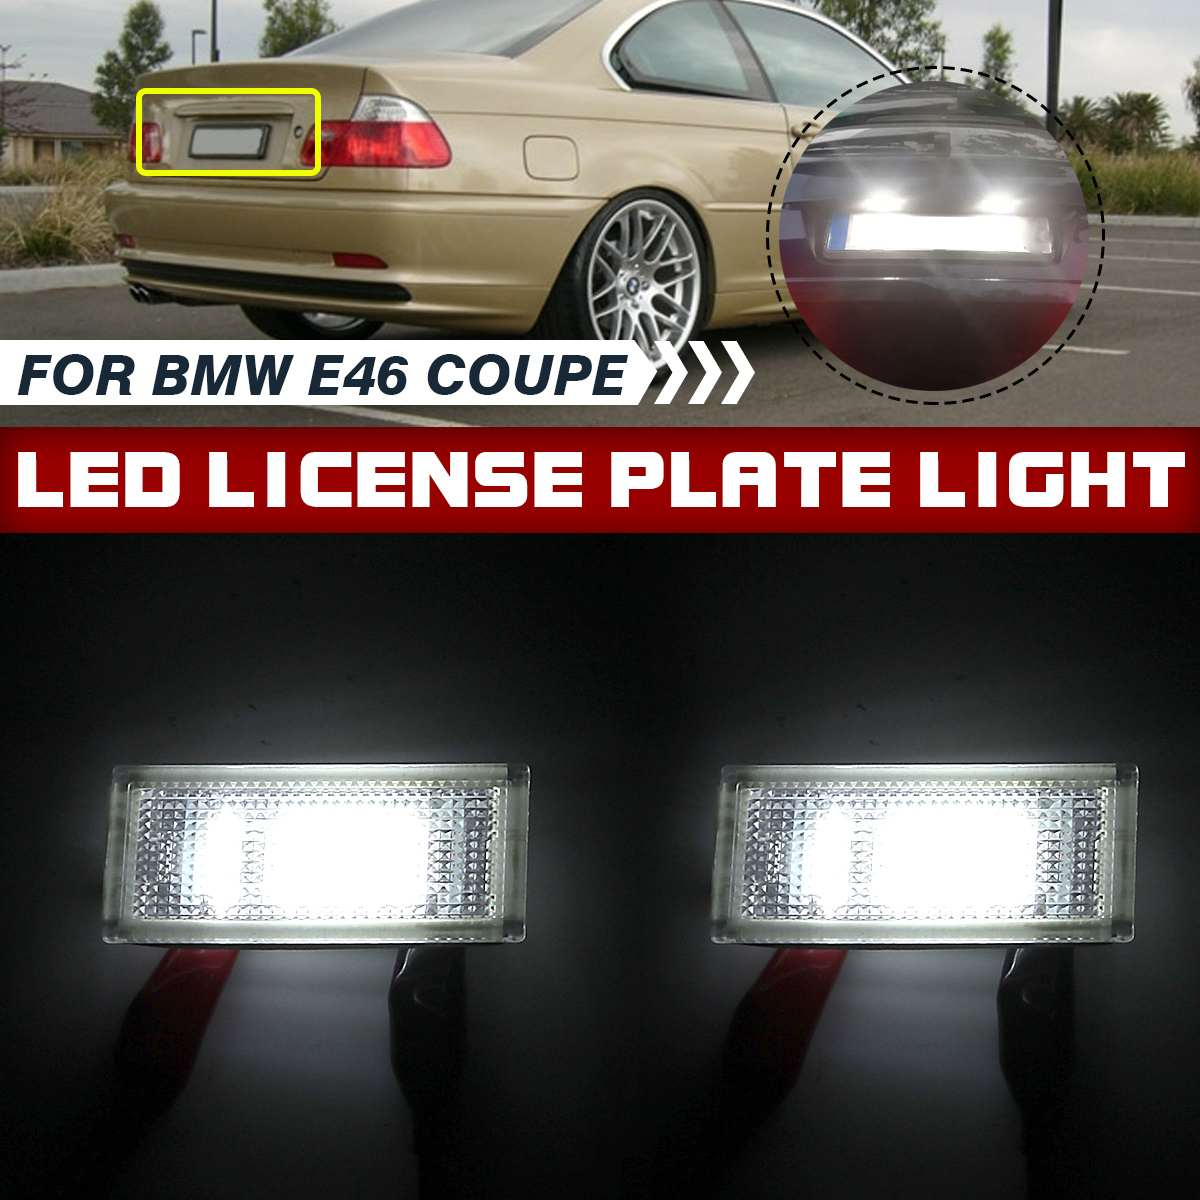 Pair LED Number Plate Lights For BMW 3 Series E46 2 Door Coupe Convertible M3 2004 2005 2006 License Lamp Rear Tail Light Bright